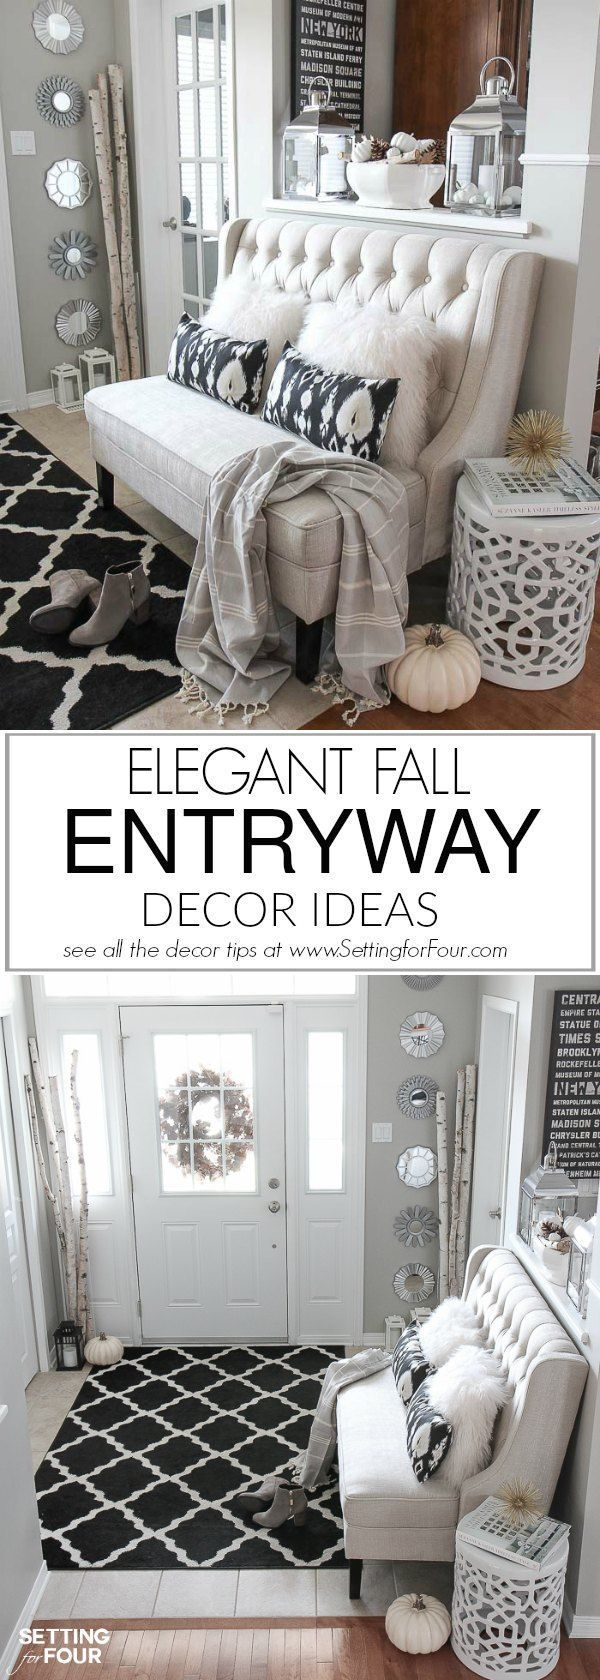 See my Elegant Fall Entryway Decor Ideas to add warmth and texture to your home for autumn! Don't miss any of my Fall neutral foyer decorating tips including ideas for the perfect stain resistant entryway area rug, a stylish settee for seating, cozy pillo